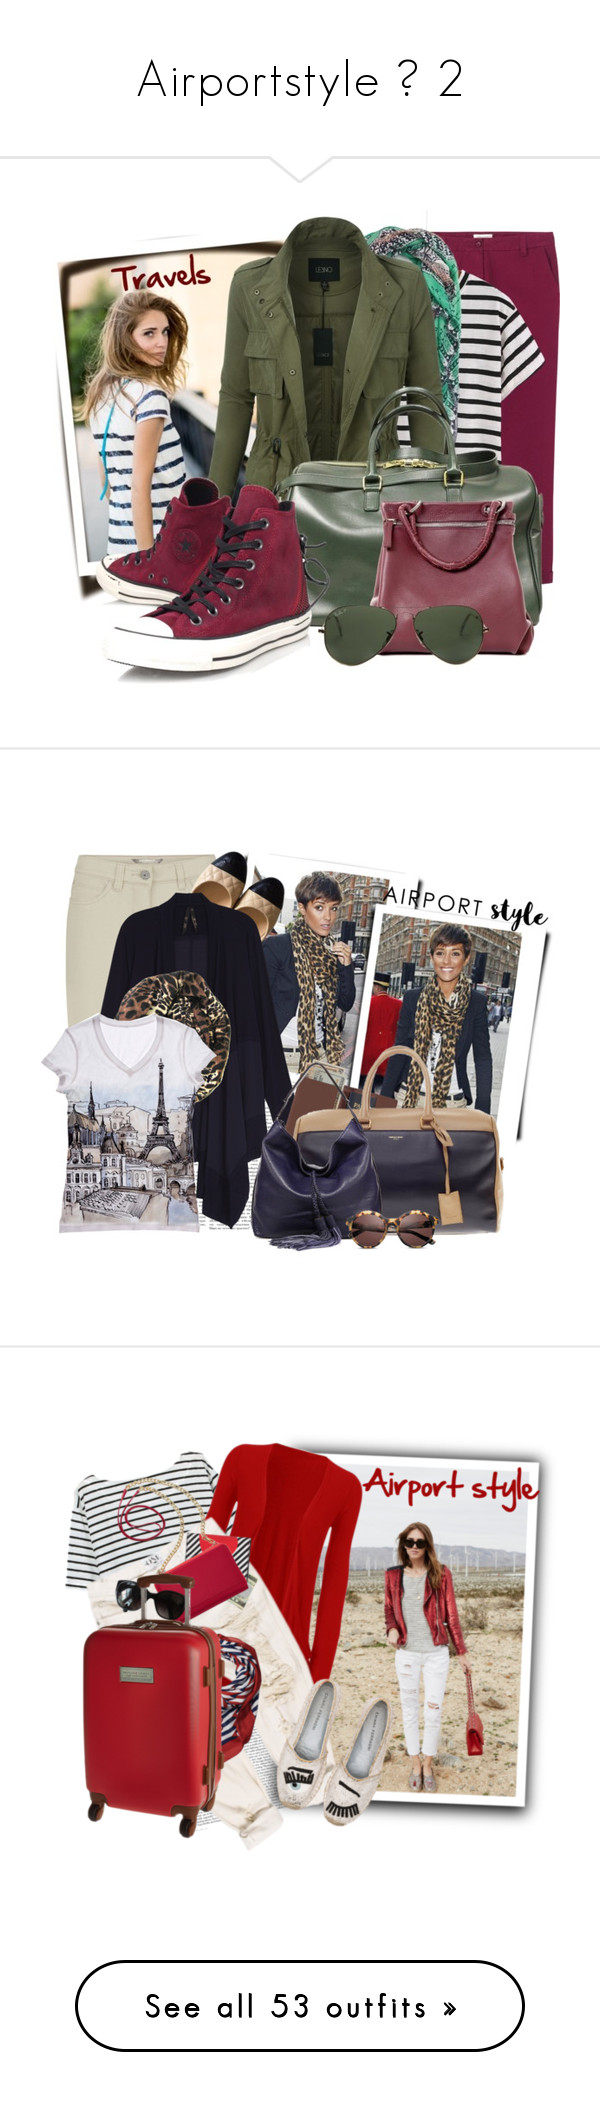 """""""Airportstyle № 2"""" by tasha1973 ❤ liked on Polyvore featuring Toast, Sole Society, LE3NO, Yves Saint Laurent, Lucque, Converse, Ray-Ban, Sandwich, Chanel and Royce Leather"""